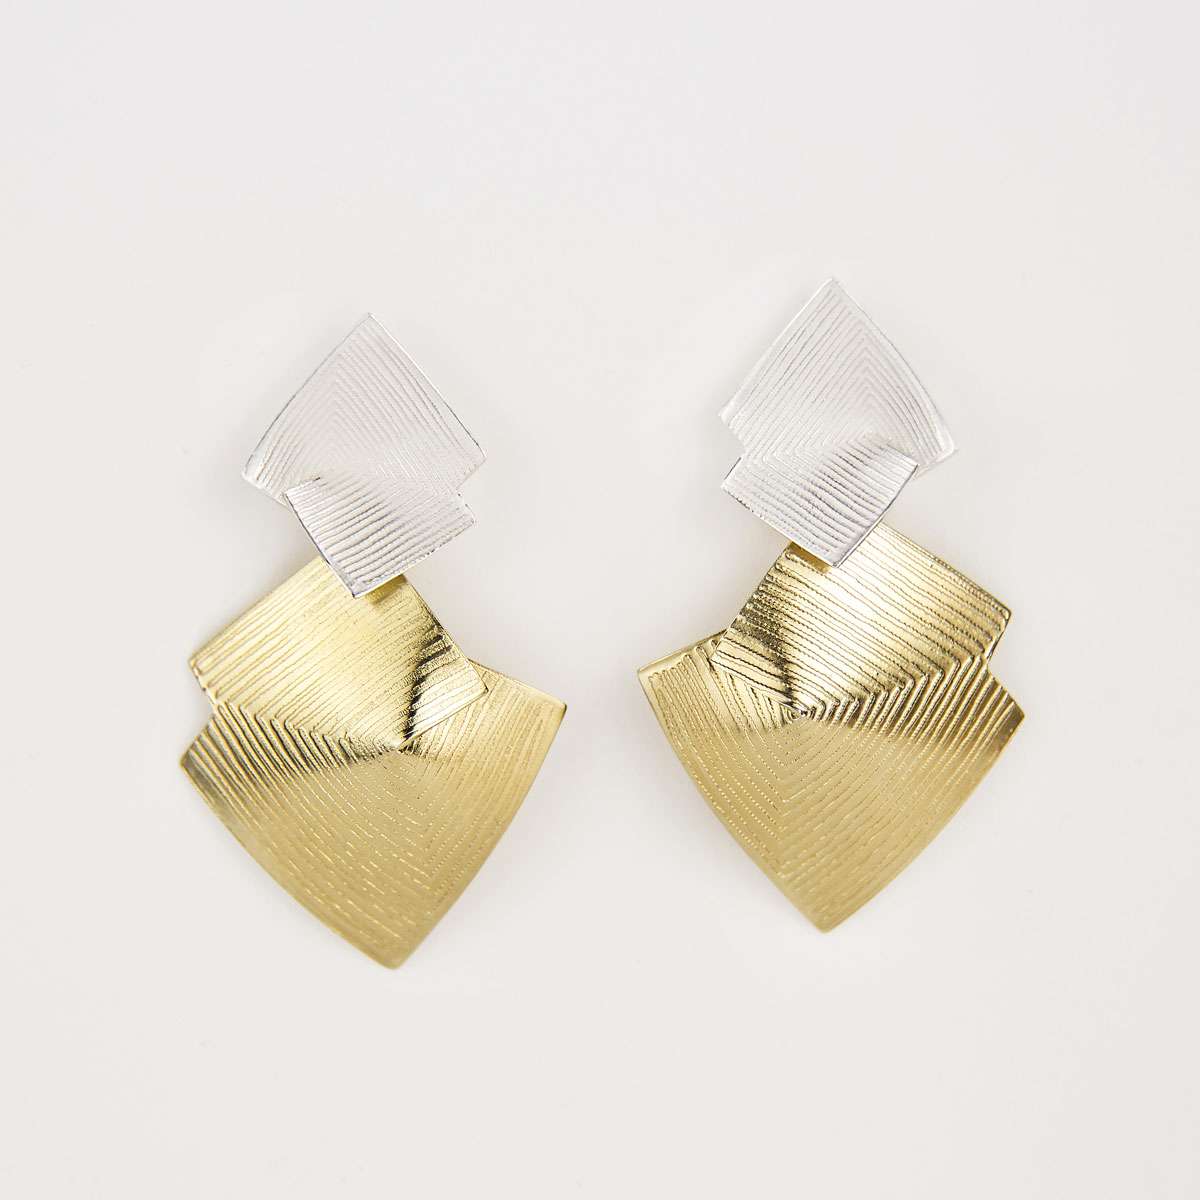 'Lines in Motion' Silver and Gold Drop Earrings, Large